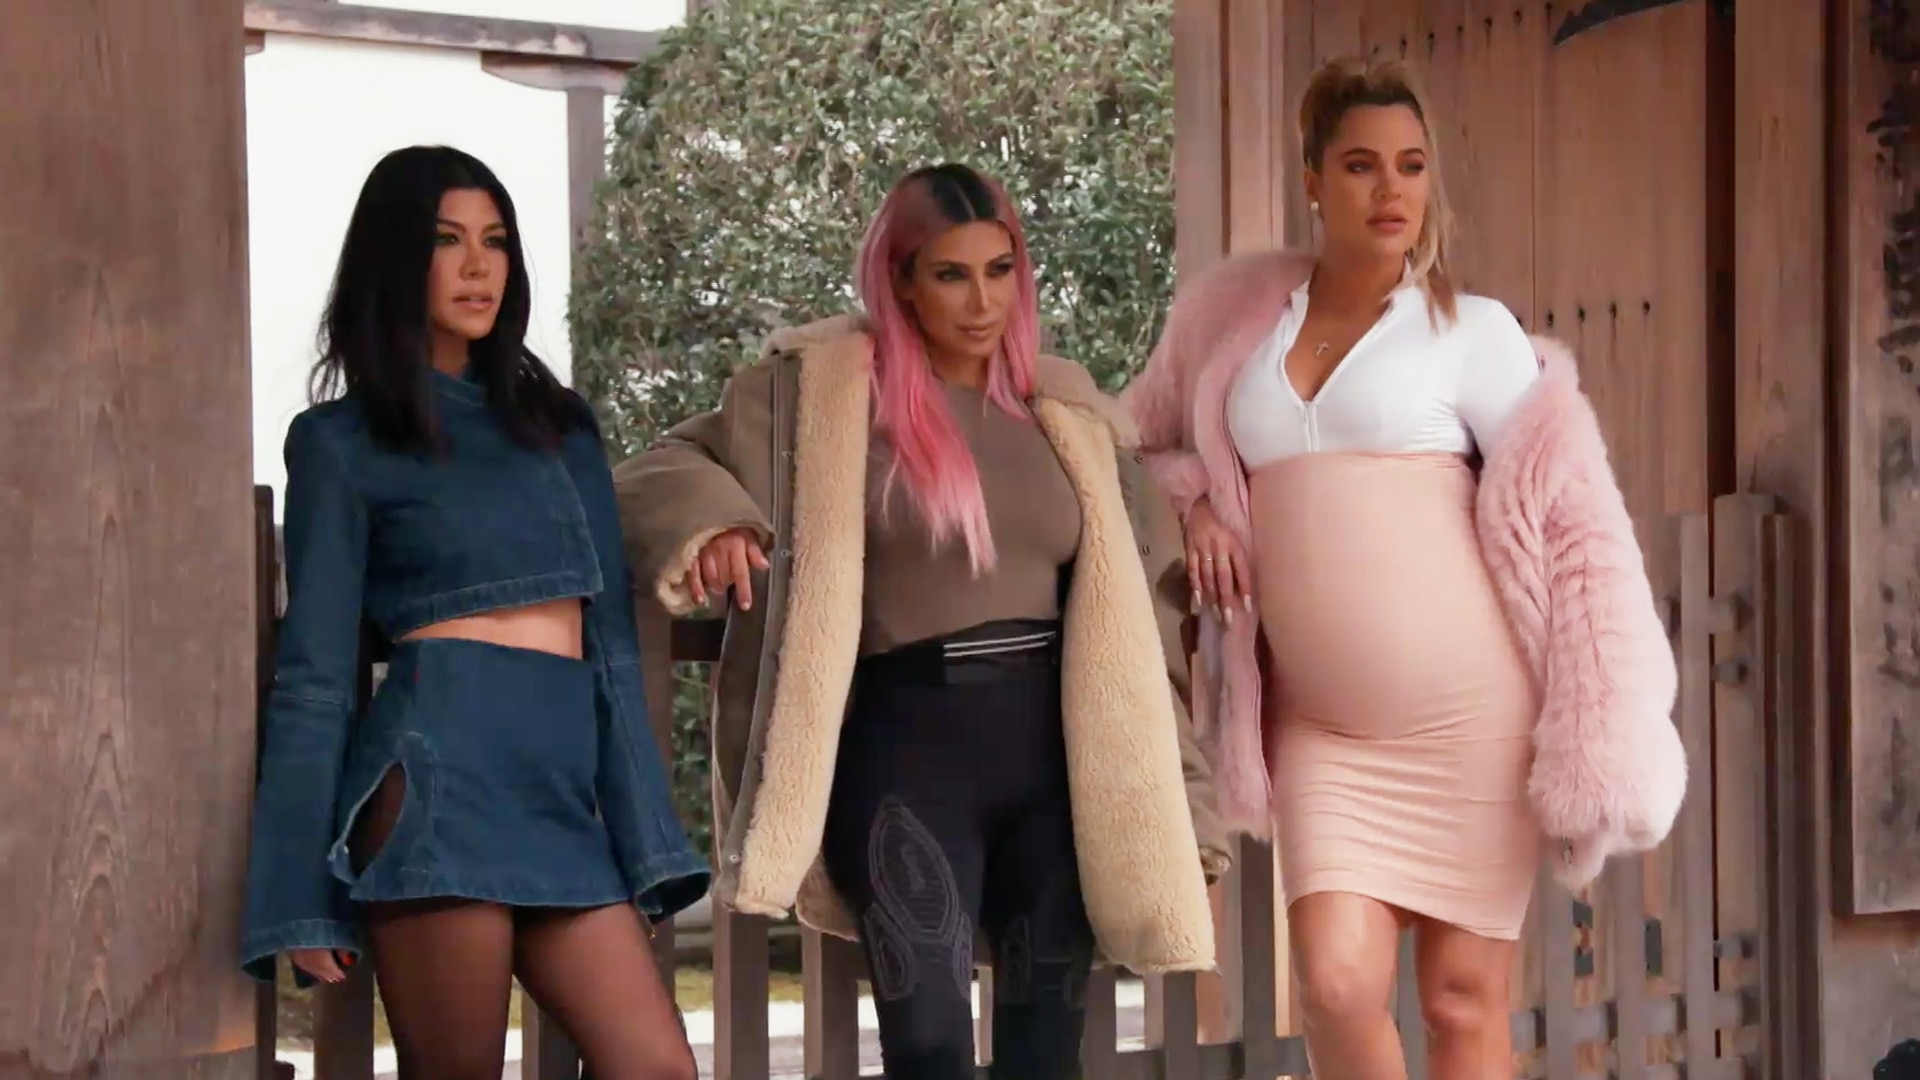 keeping up with the kardashians season 7 episode 10 watch online free